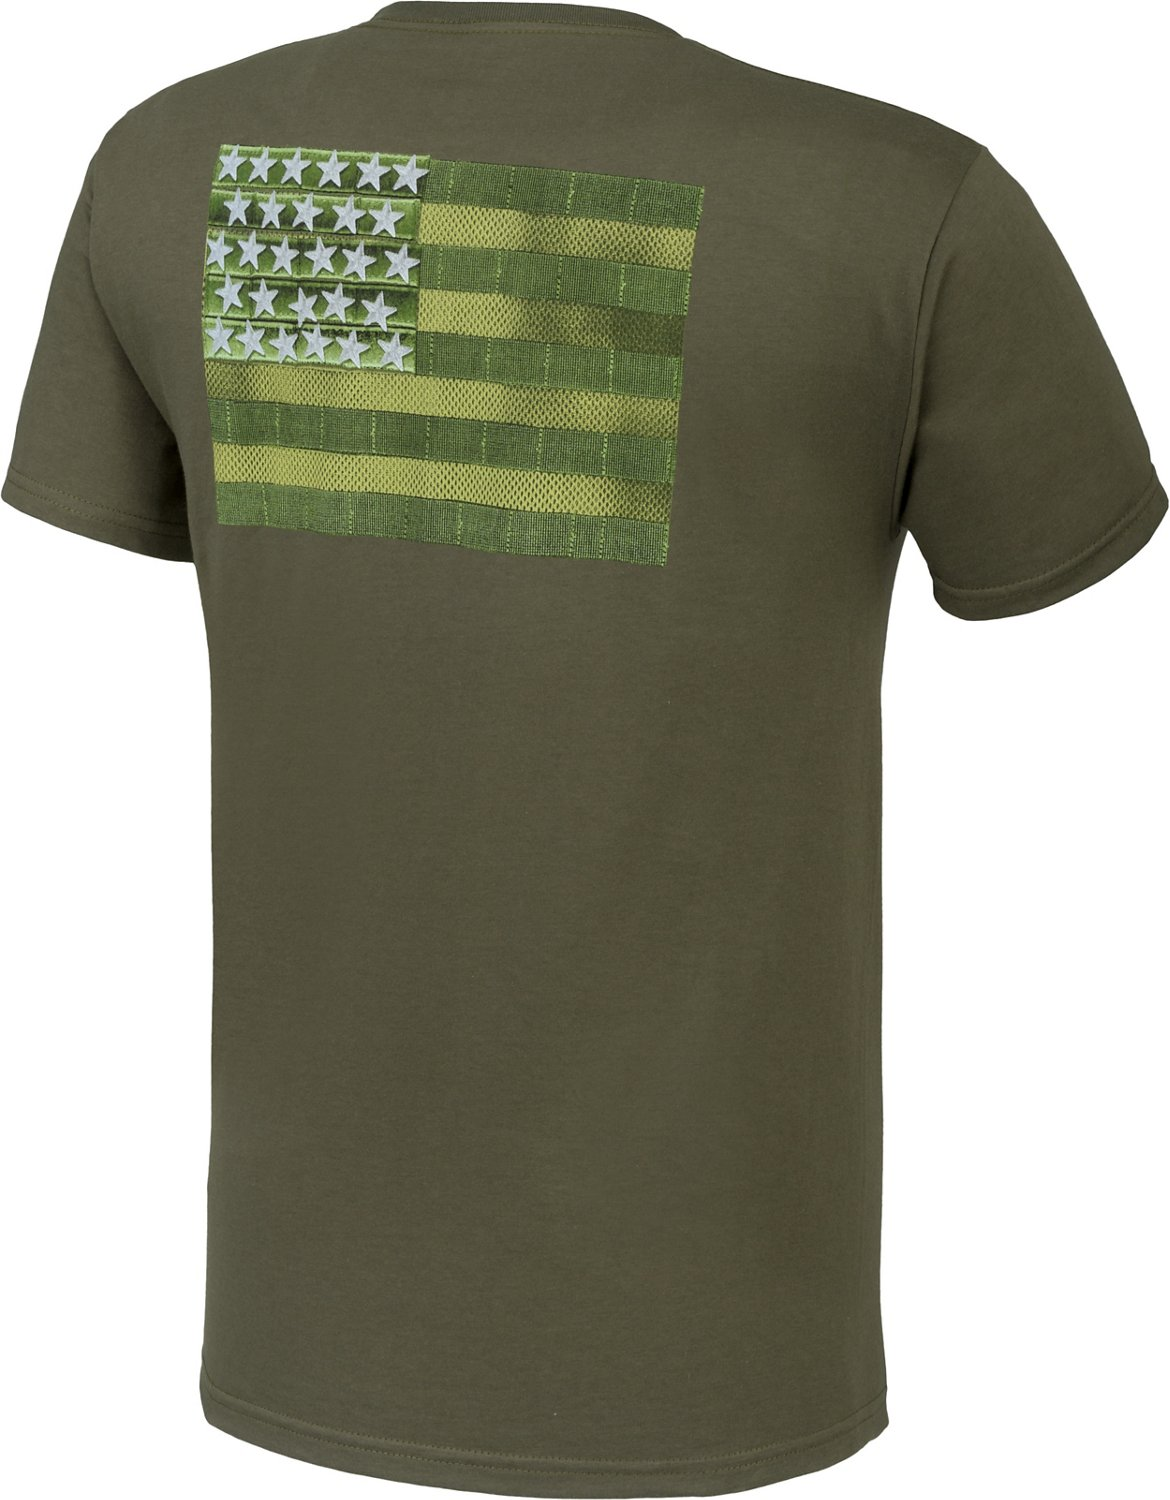 294b9c12899a Display product reviews for 5.11 Tactical Men's MOLLE America Short Sleeve T -shirt